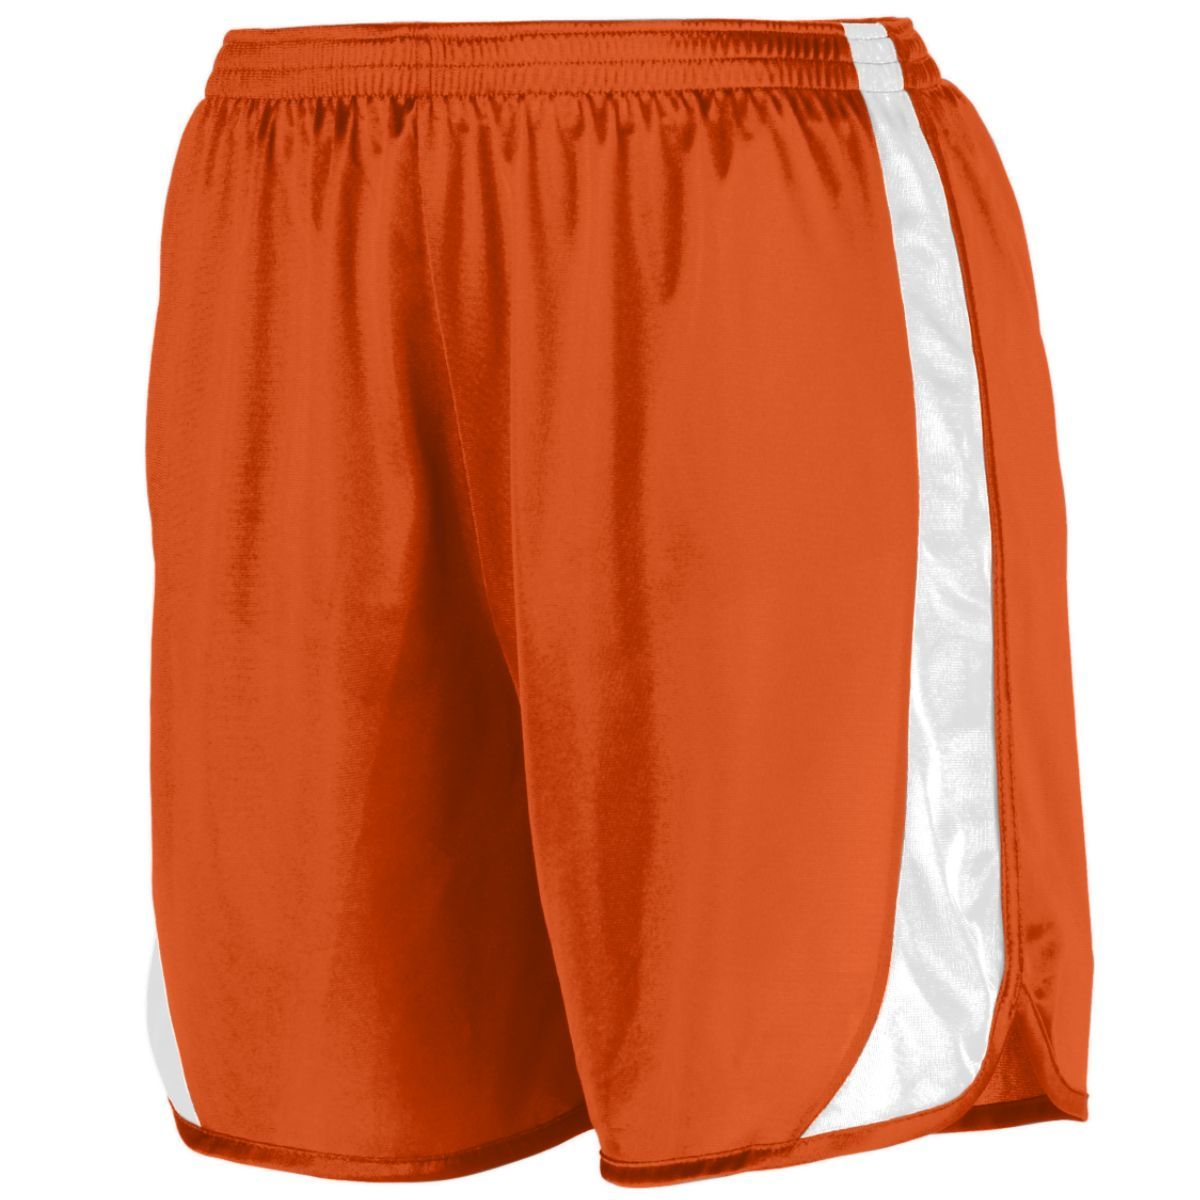 Youth Wicking Track Shorts With Side Insert - ORANGE/WHITE